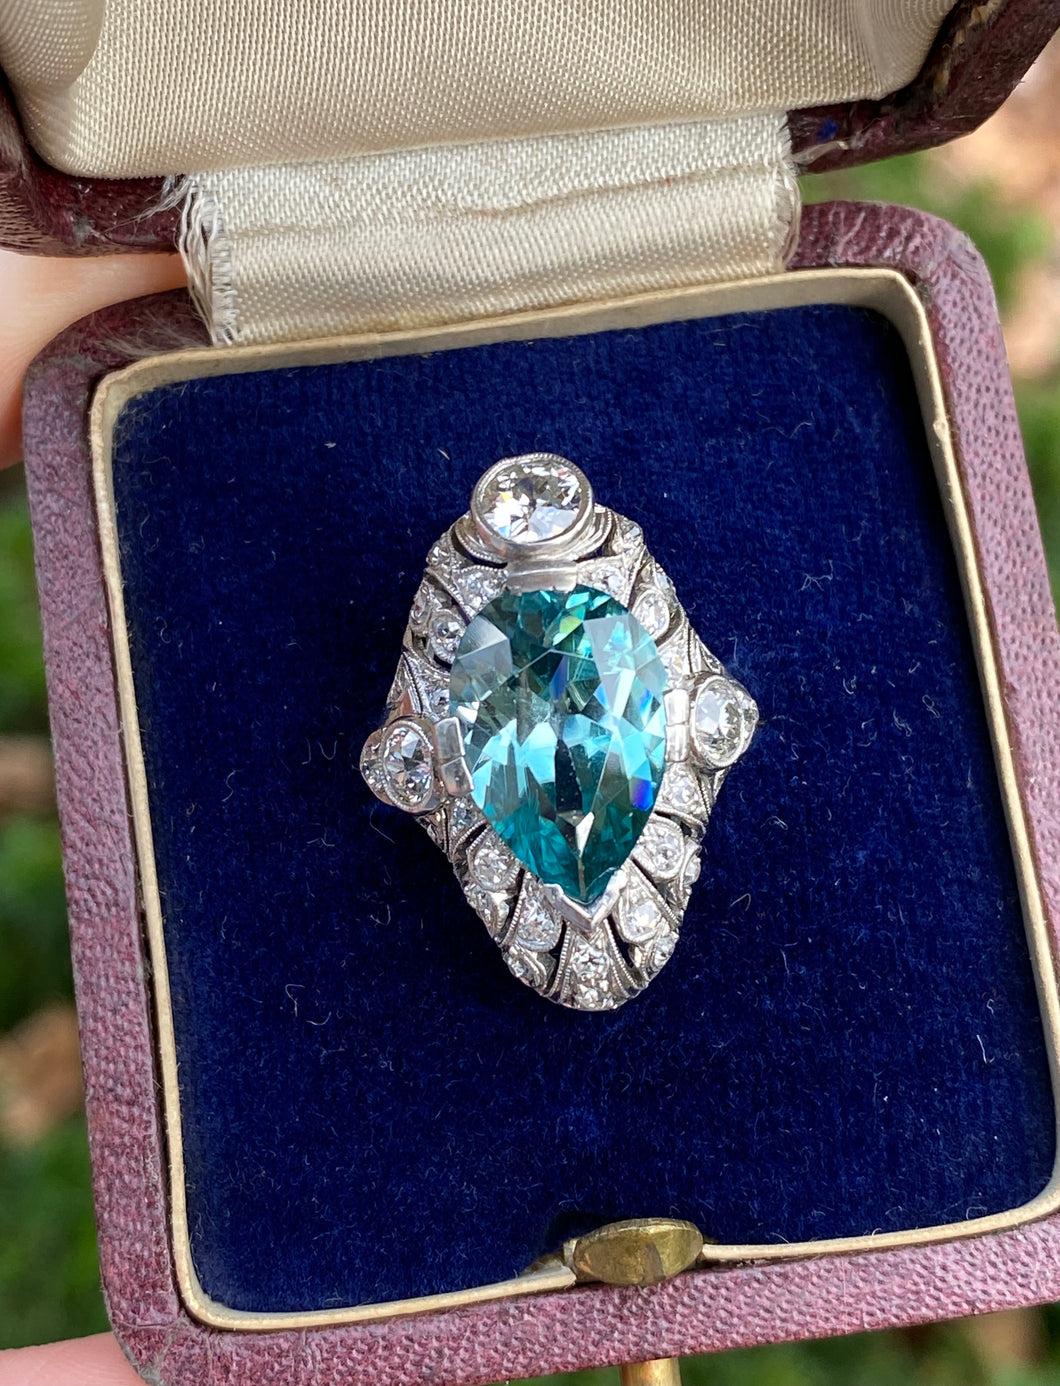 Edwardian GIA 9 Carat Blue Zircon and 1.3 Carat Diamond Platinum Navette Ring